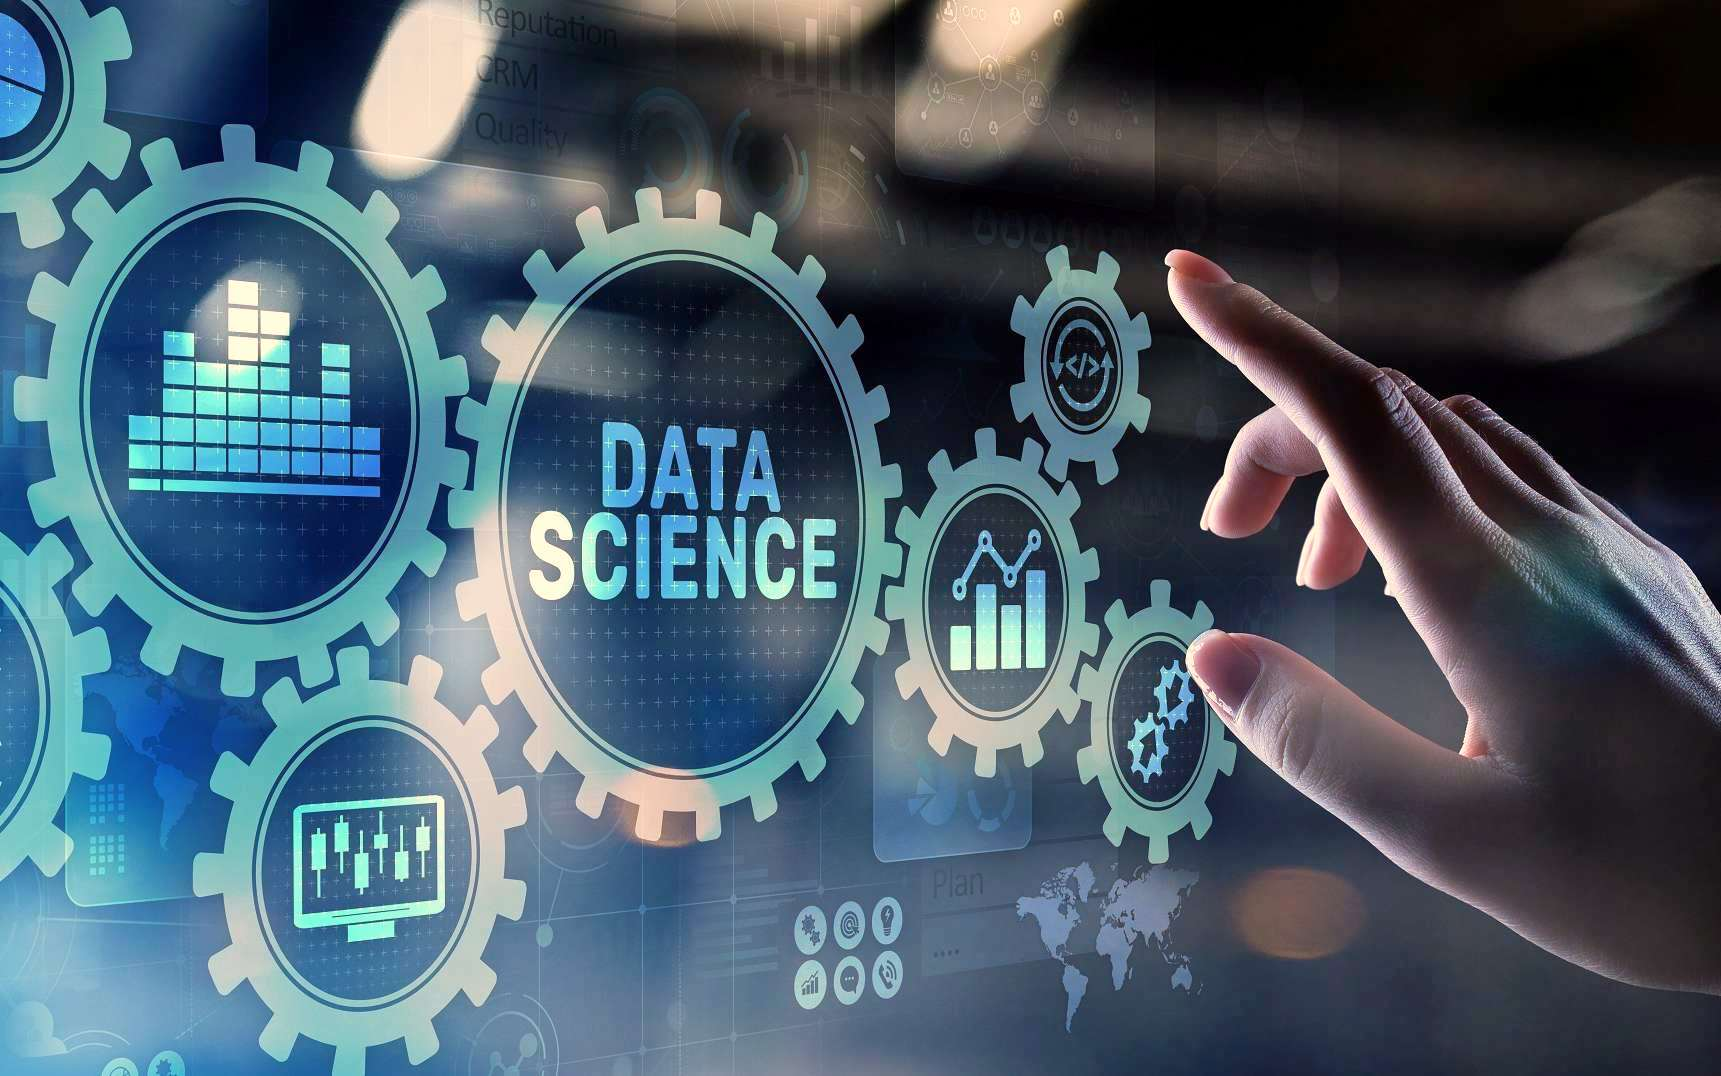 Data Science Course In Chandigarh data science course in chandigarh Data Science Course In Chandigarh Data Science min 1